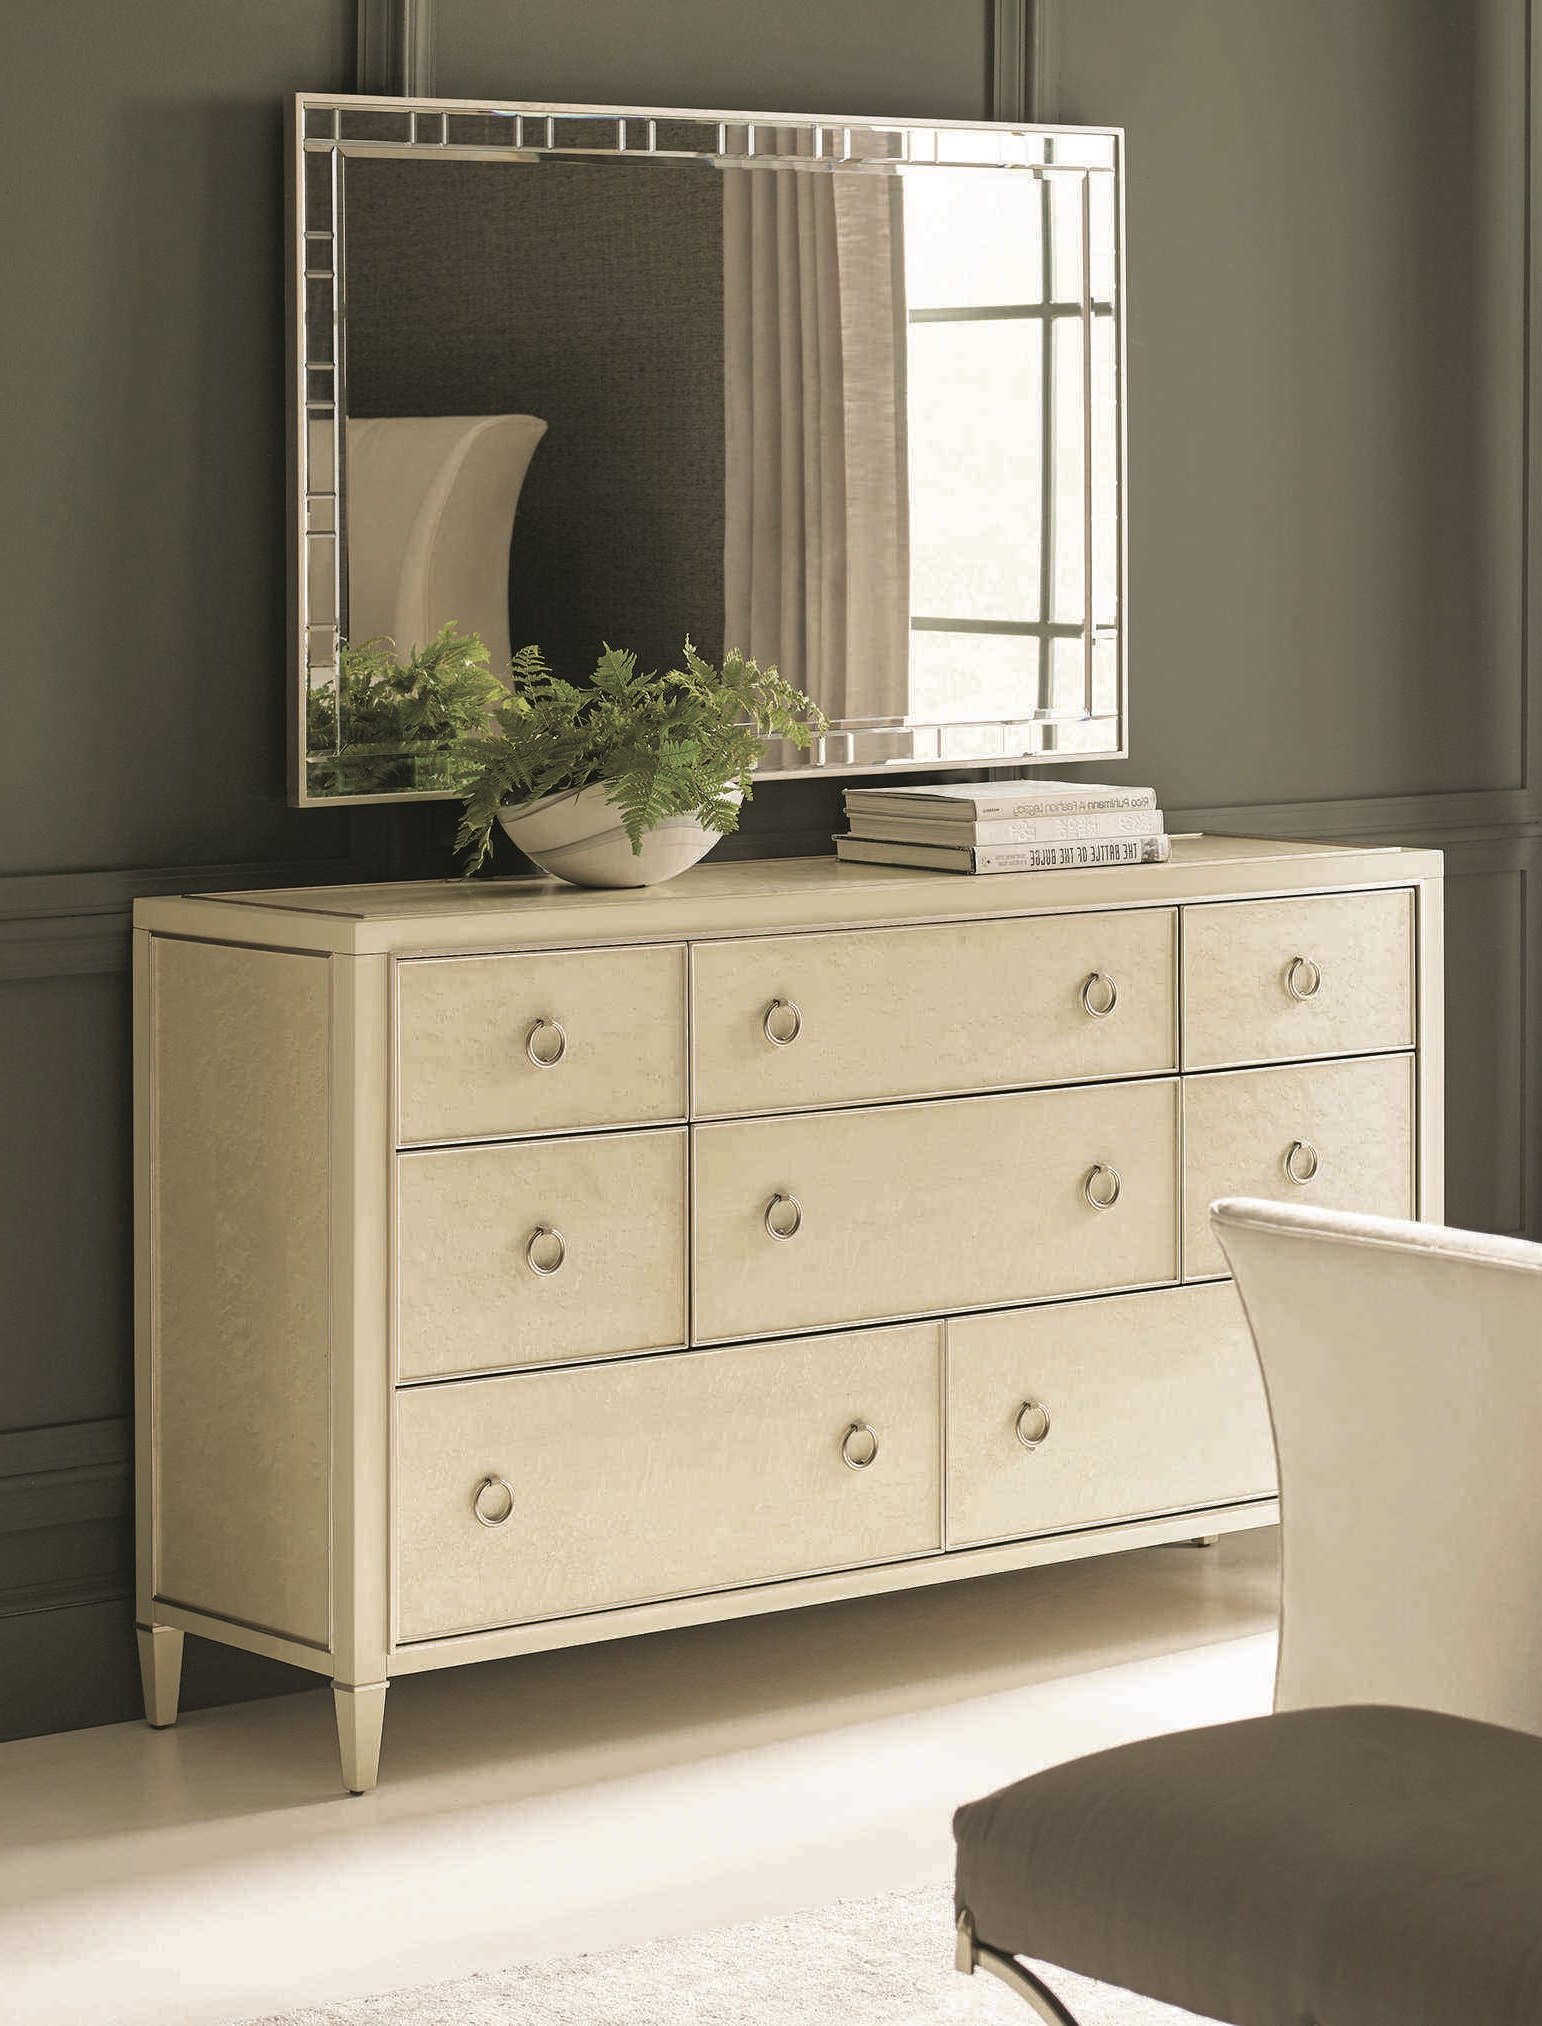 Fashionable Wall Mirrors With Drawers Throughout Caracole Classic Pure Eight Drawer Triple Dresser With Wall Mirror Set (Gallery 6 of 20)